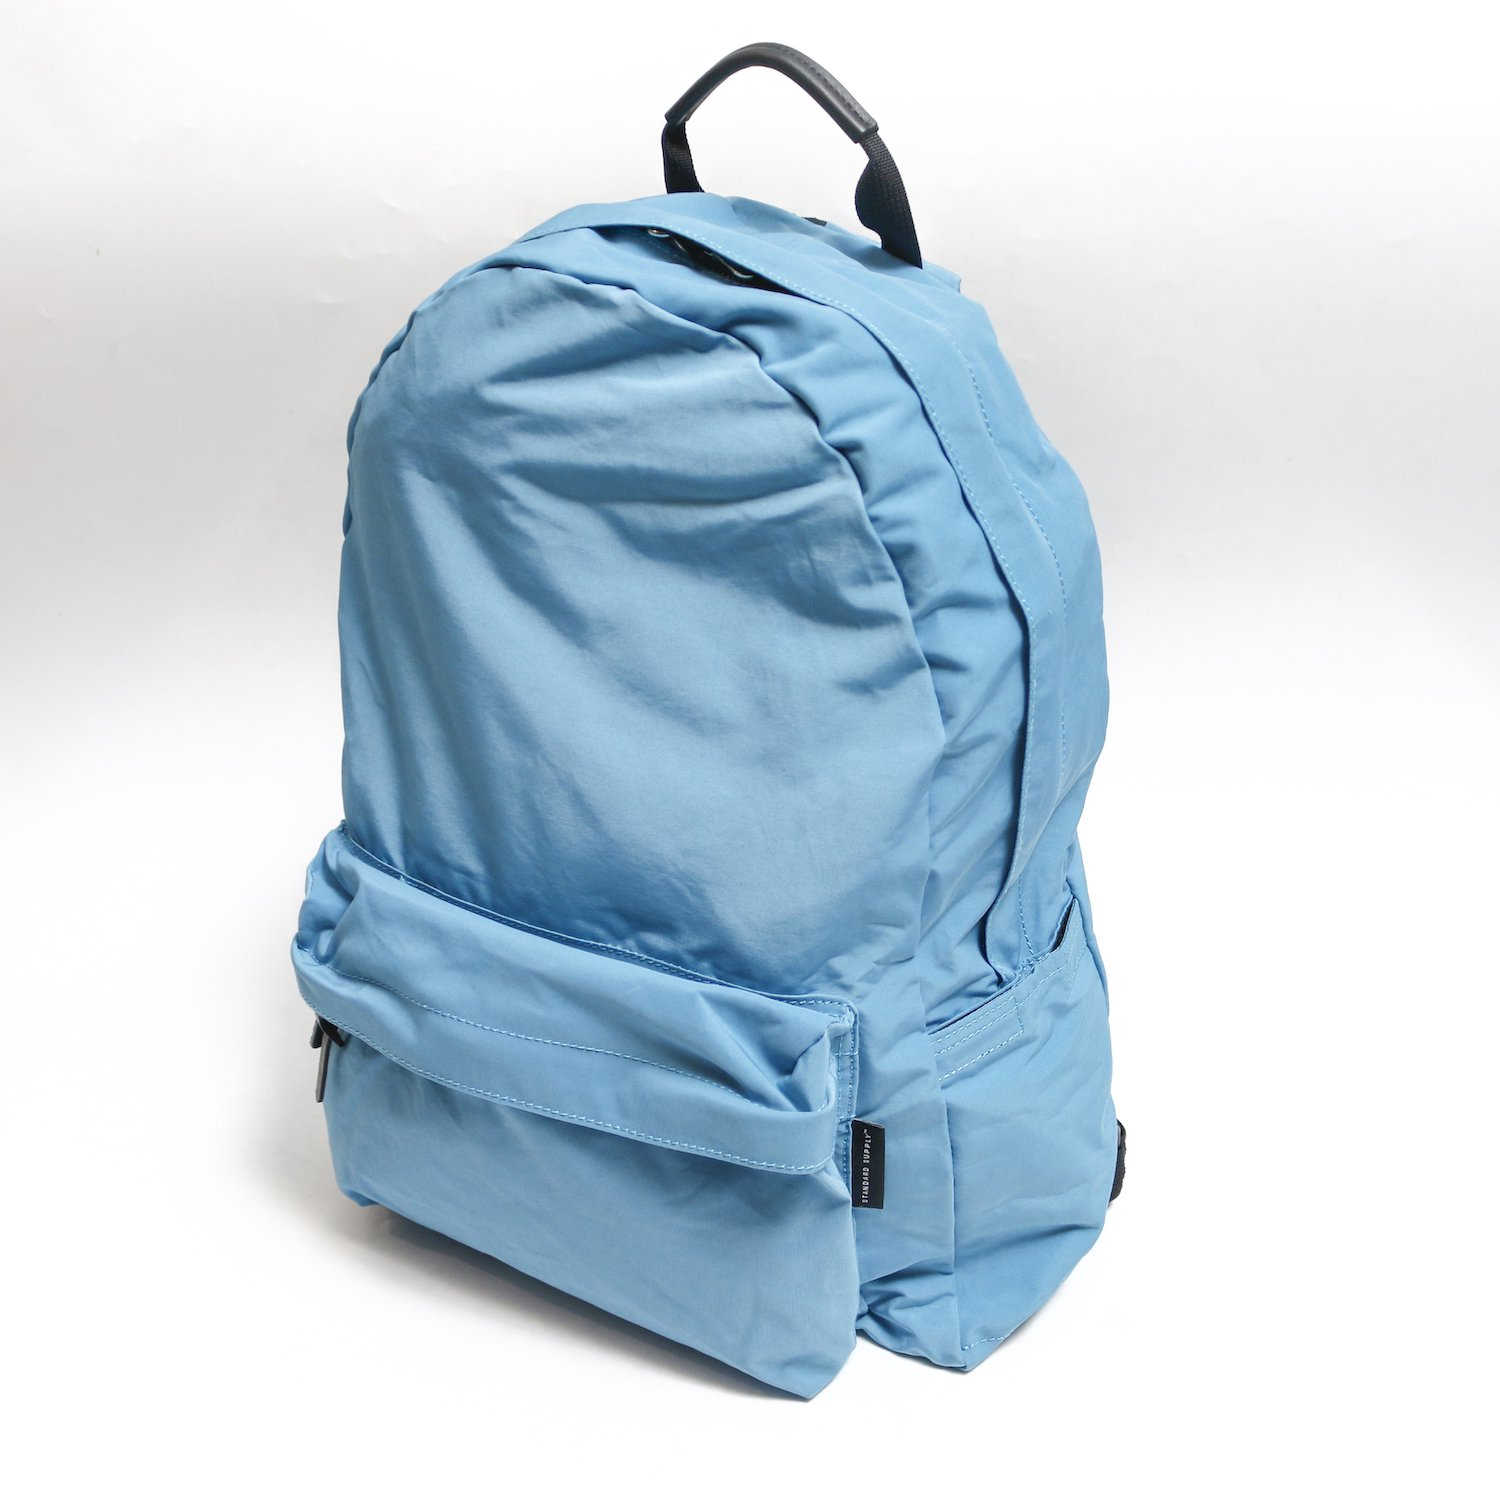 STANDARD SUPPLY<br />SIMPLICITY DAYLY DAYPACK